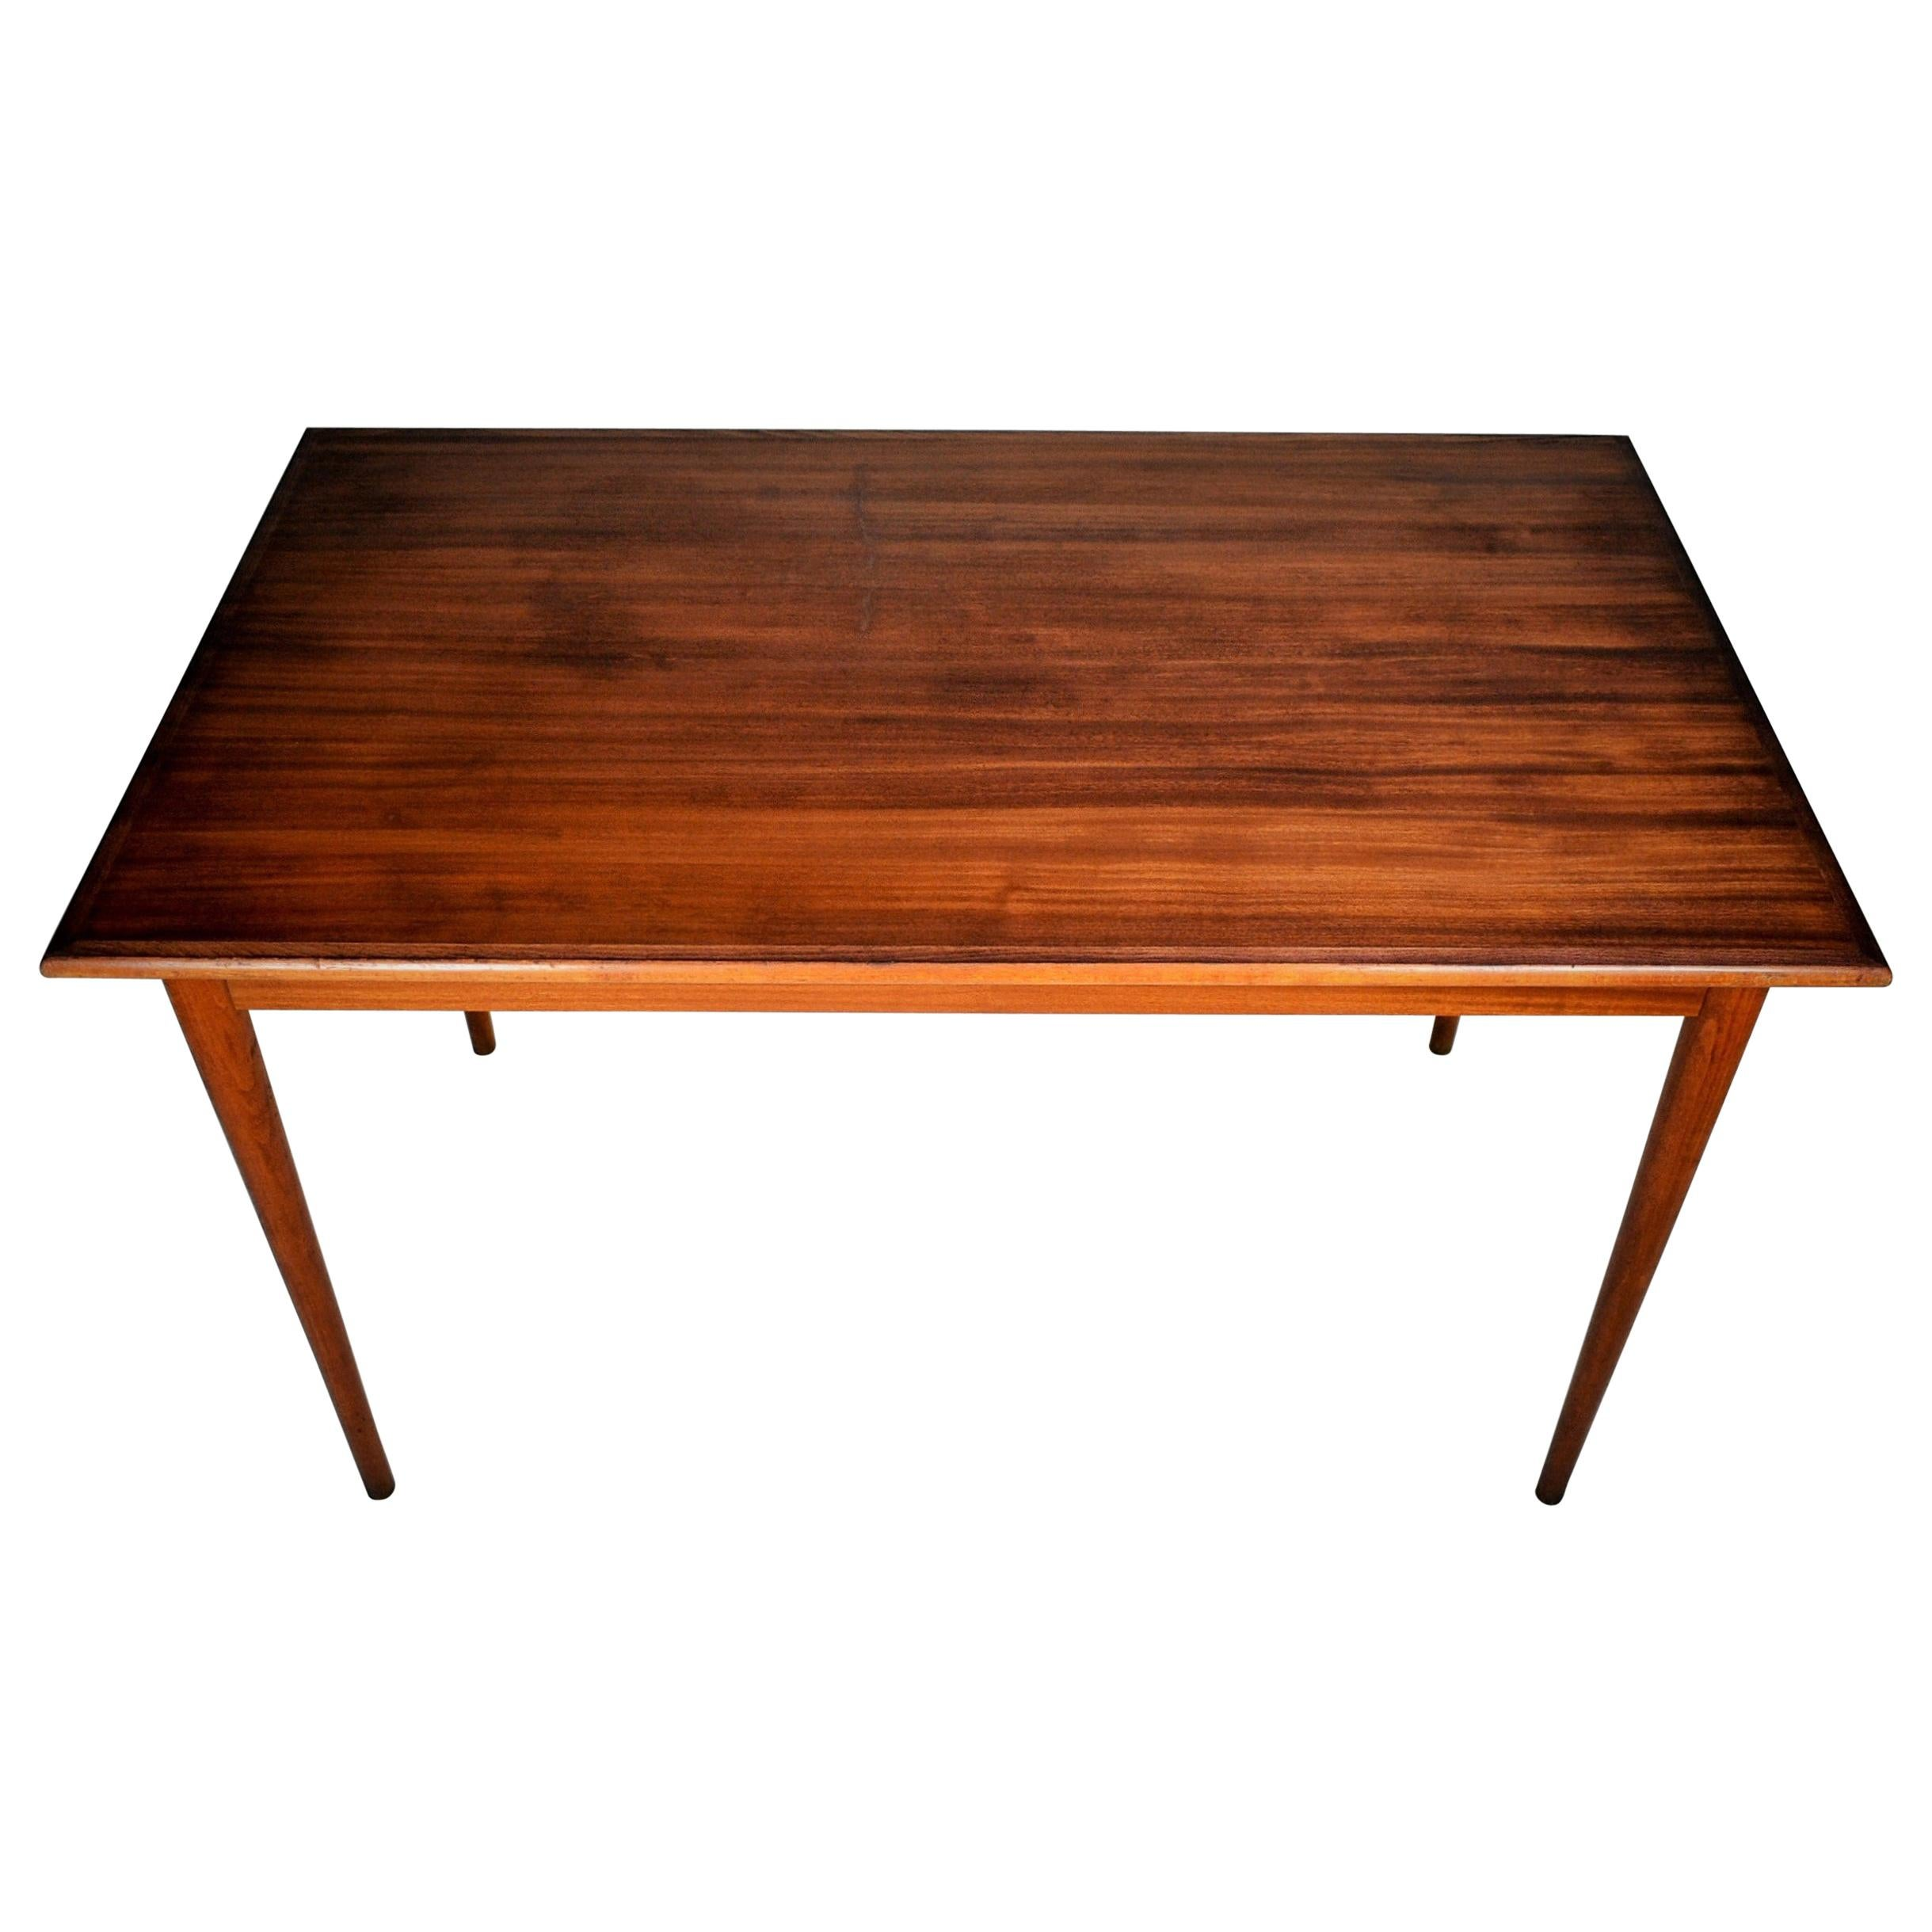 Midcentury Dining Table, 1960s